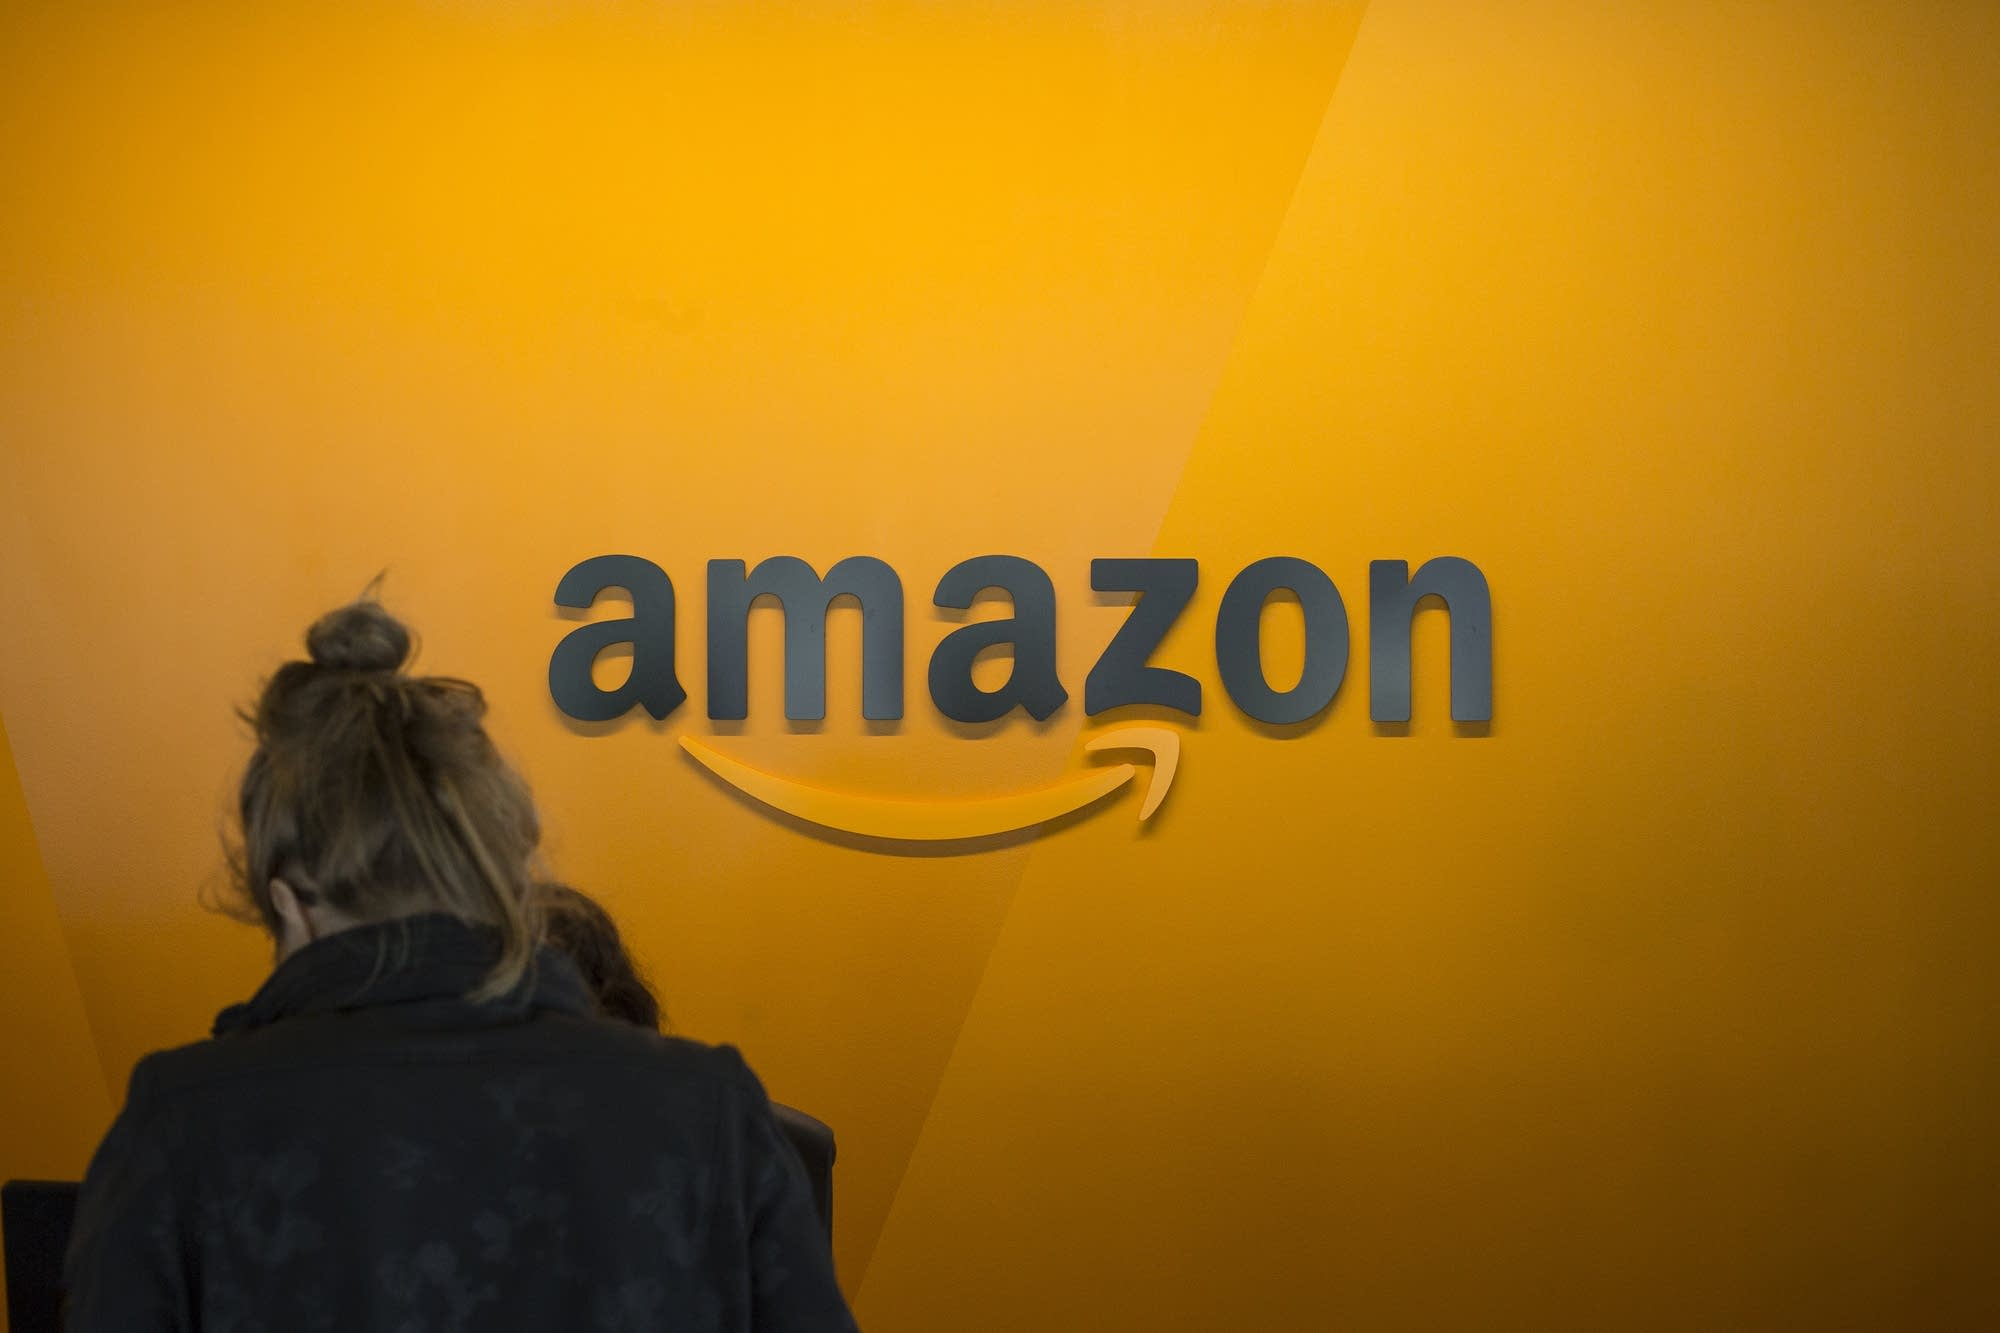 Amazon to open a new Vancouver office in 2022